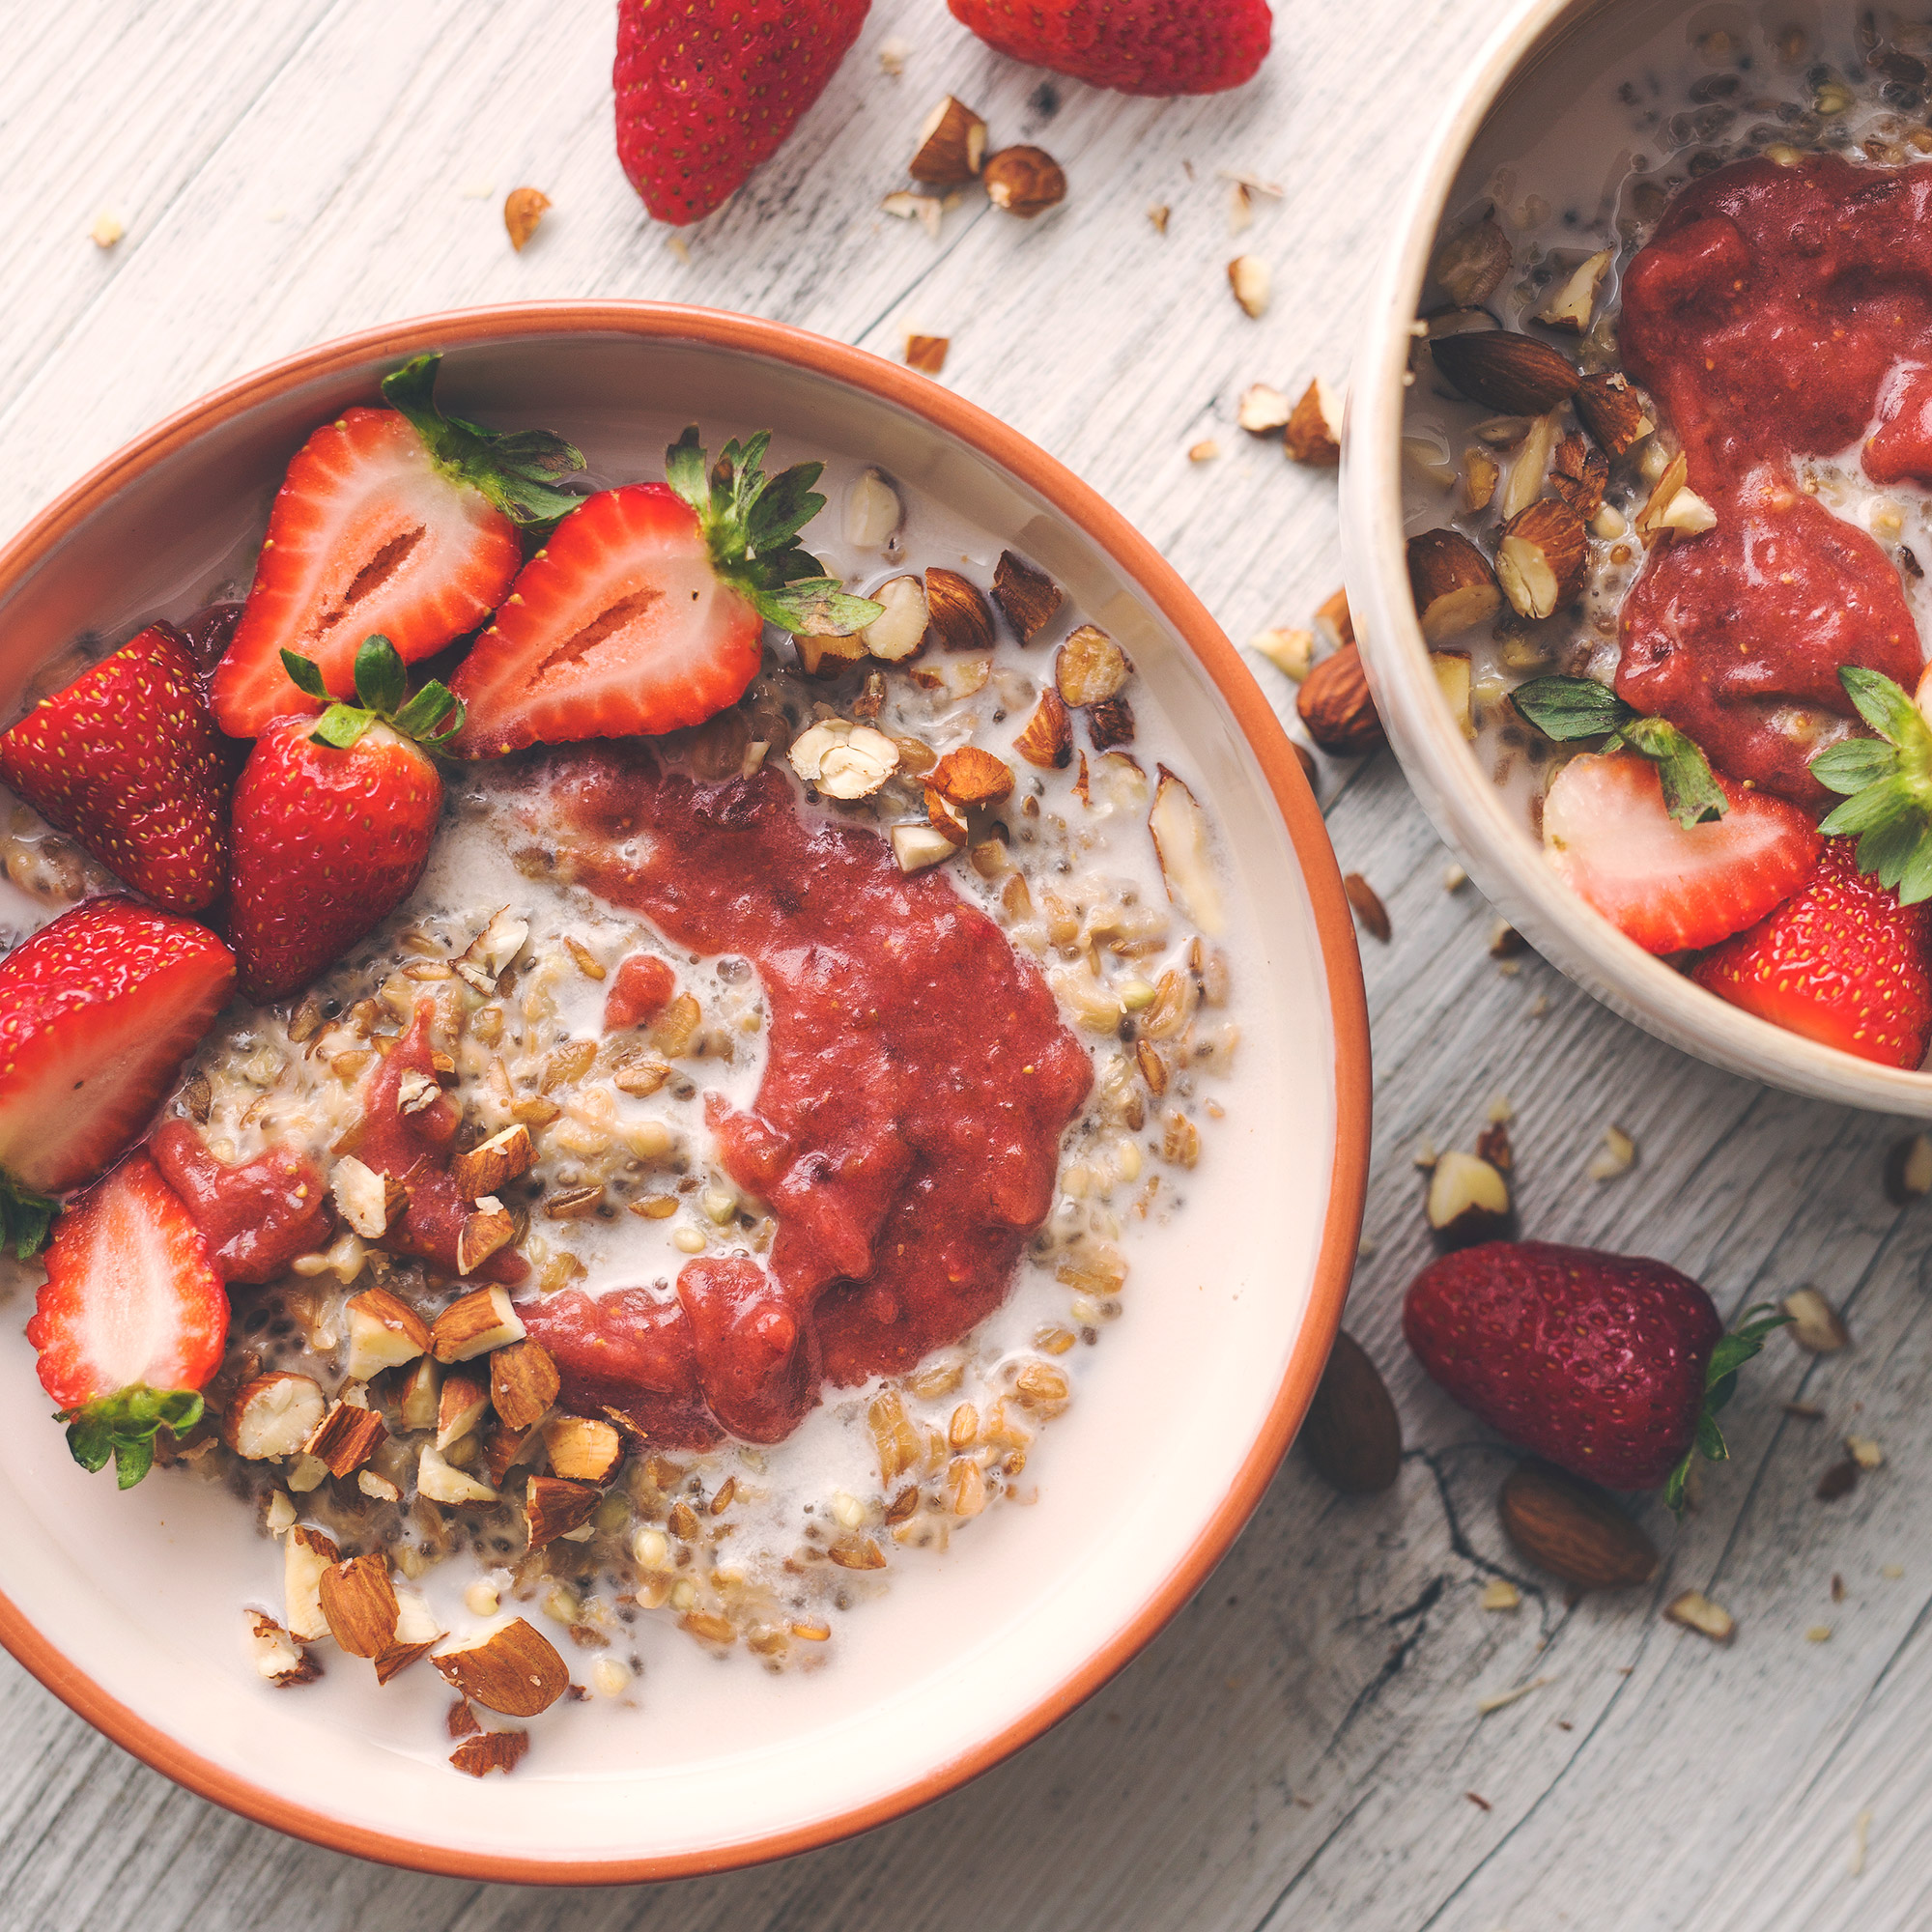 Four Grain Strawberry Ripple Porridge